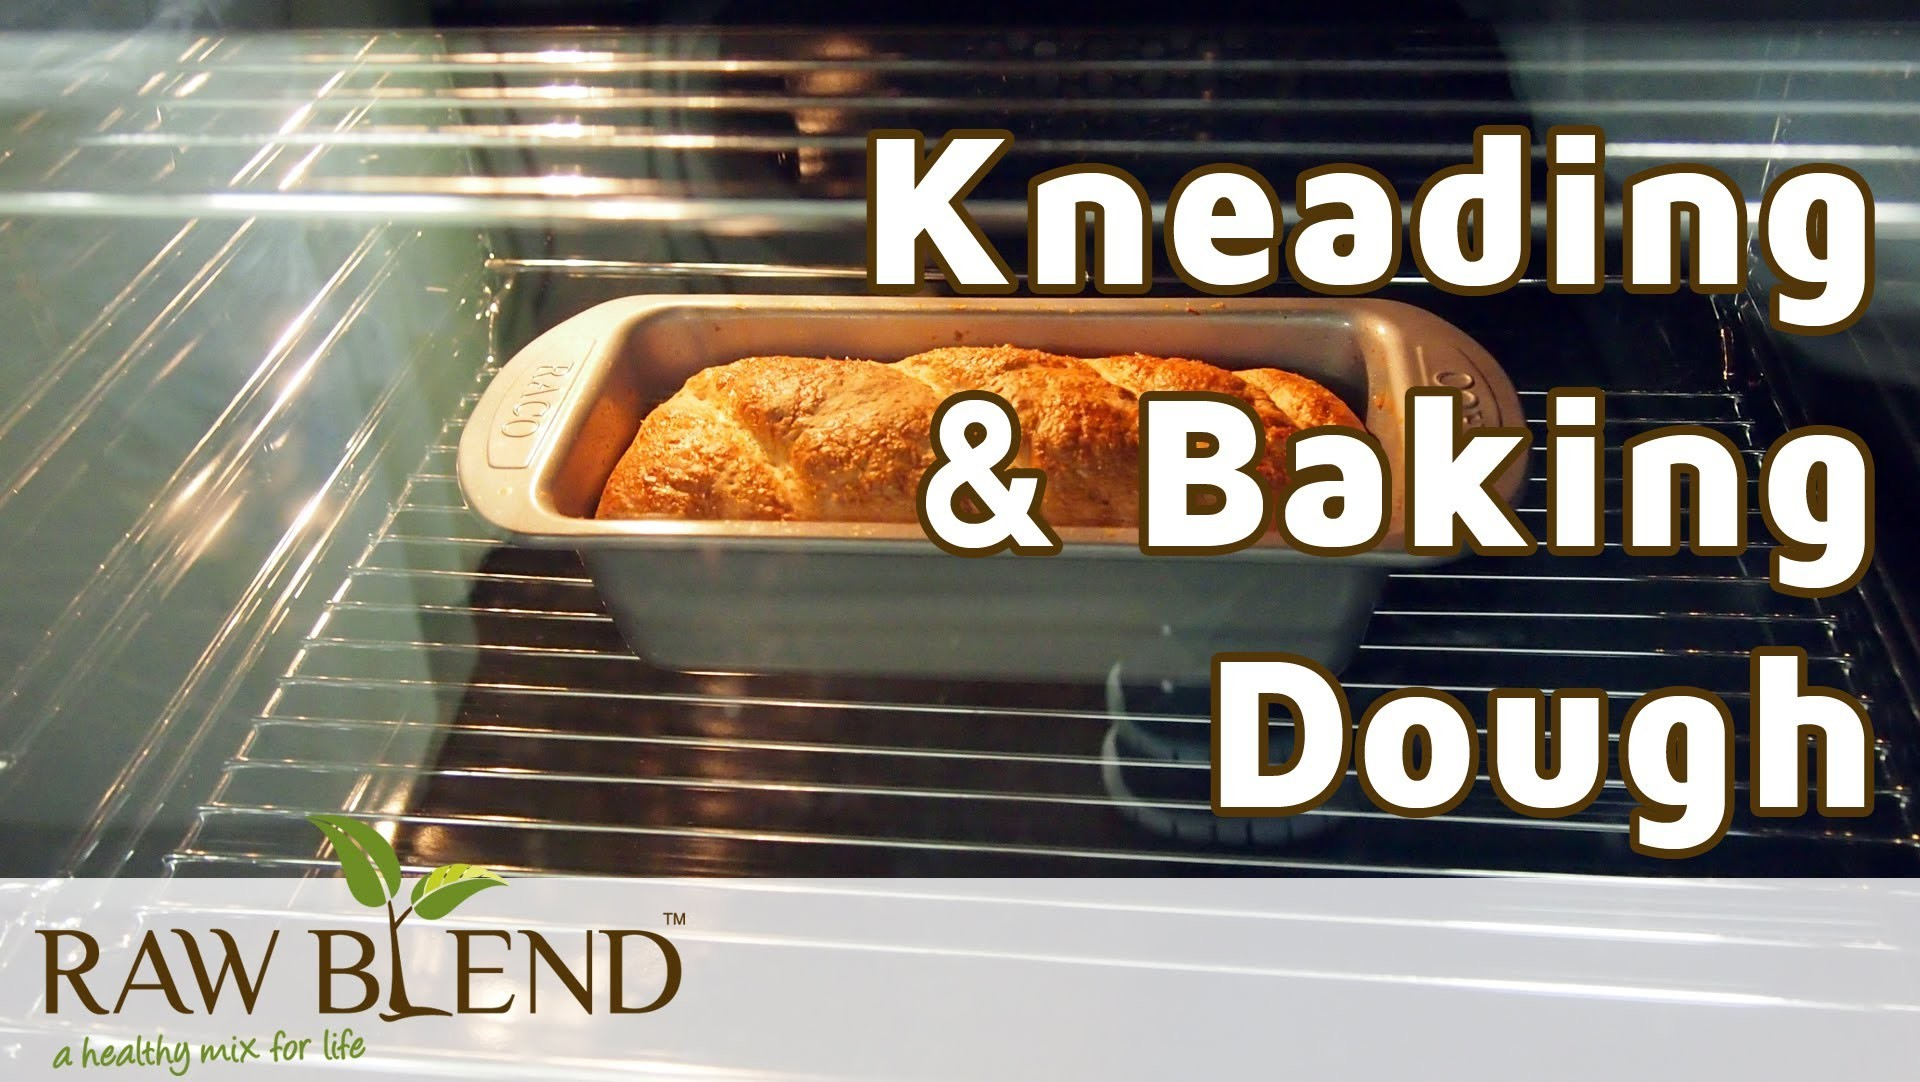 How to Knead Dough & Bake Bread in a Vitamix 5200 Blender by Raw Blend